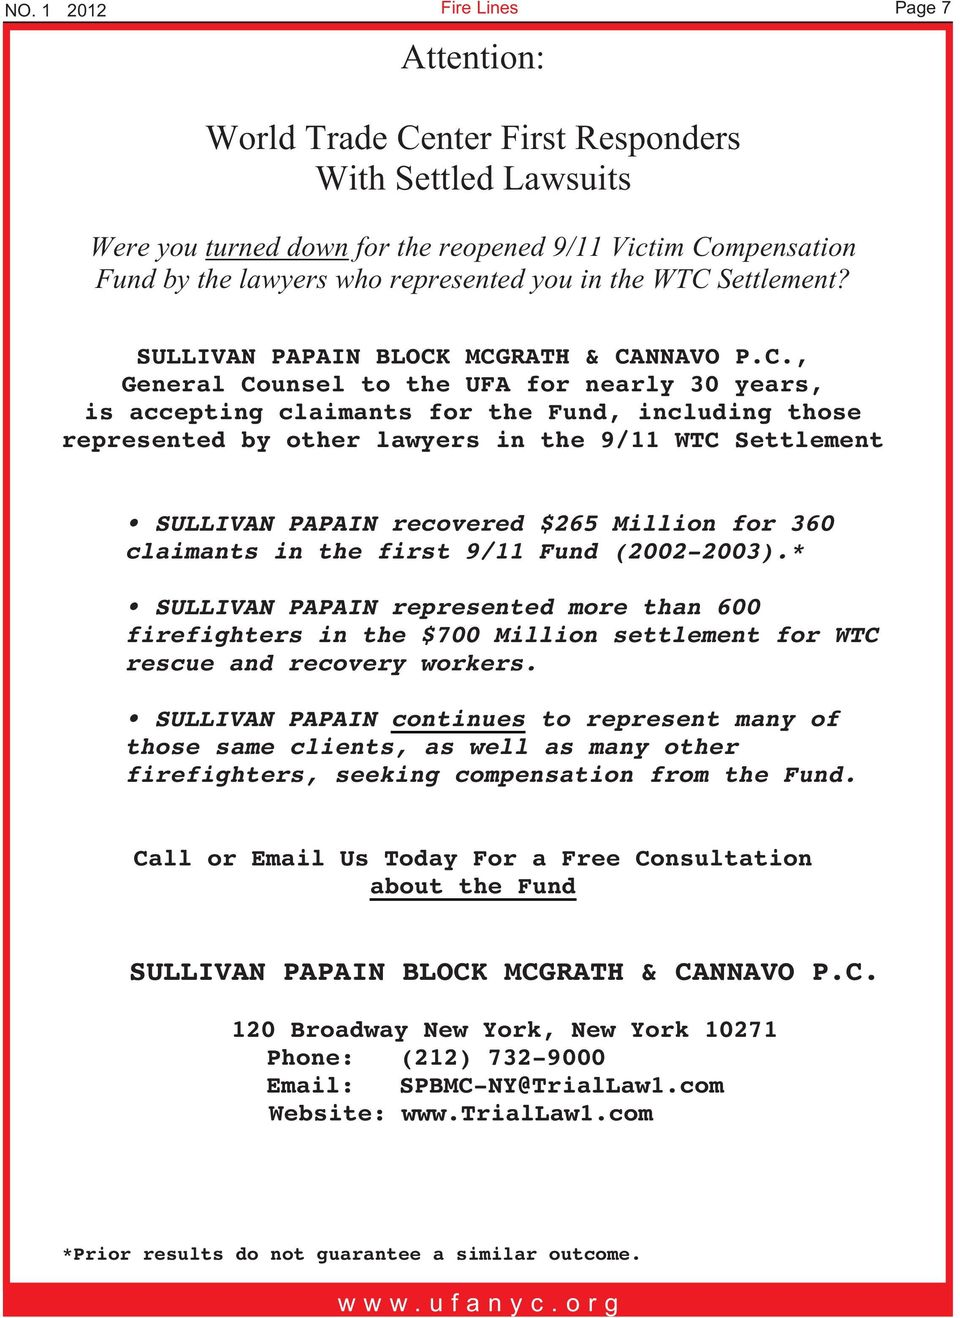 MCGRATH & CANNAVO P.C., General Counsel to the UFA for nearly 30 years, is accepting claimants for the Fund, including those represented by other lawyers in the 9/11 WTC Settlement SULLIVAN PAPAIN